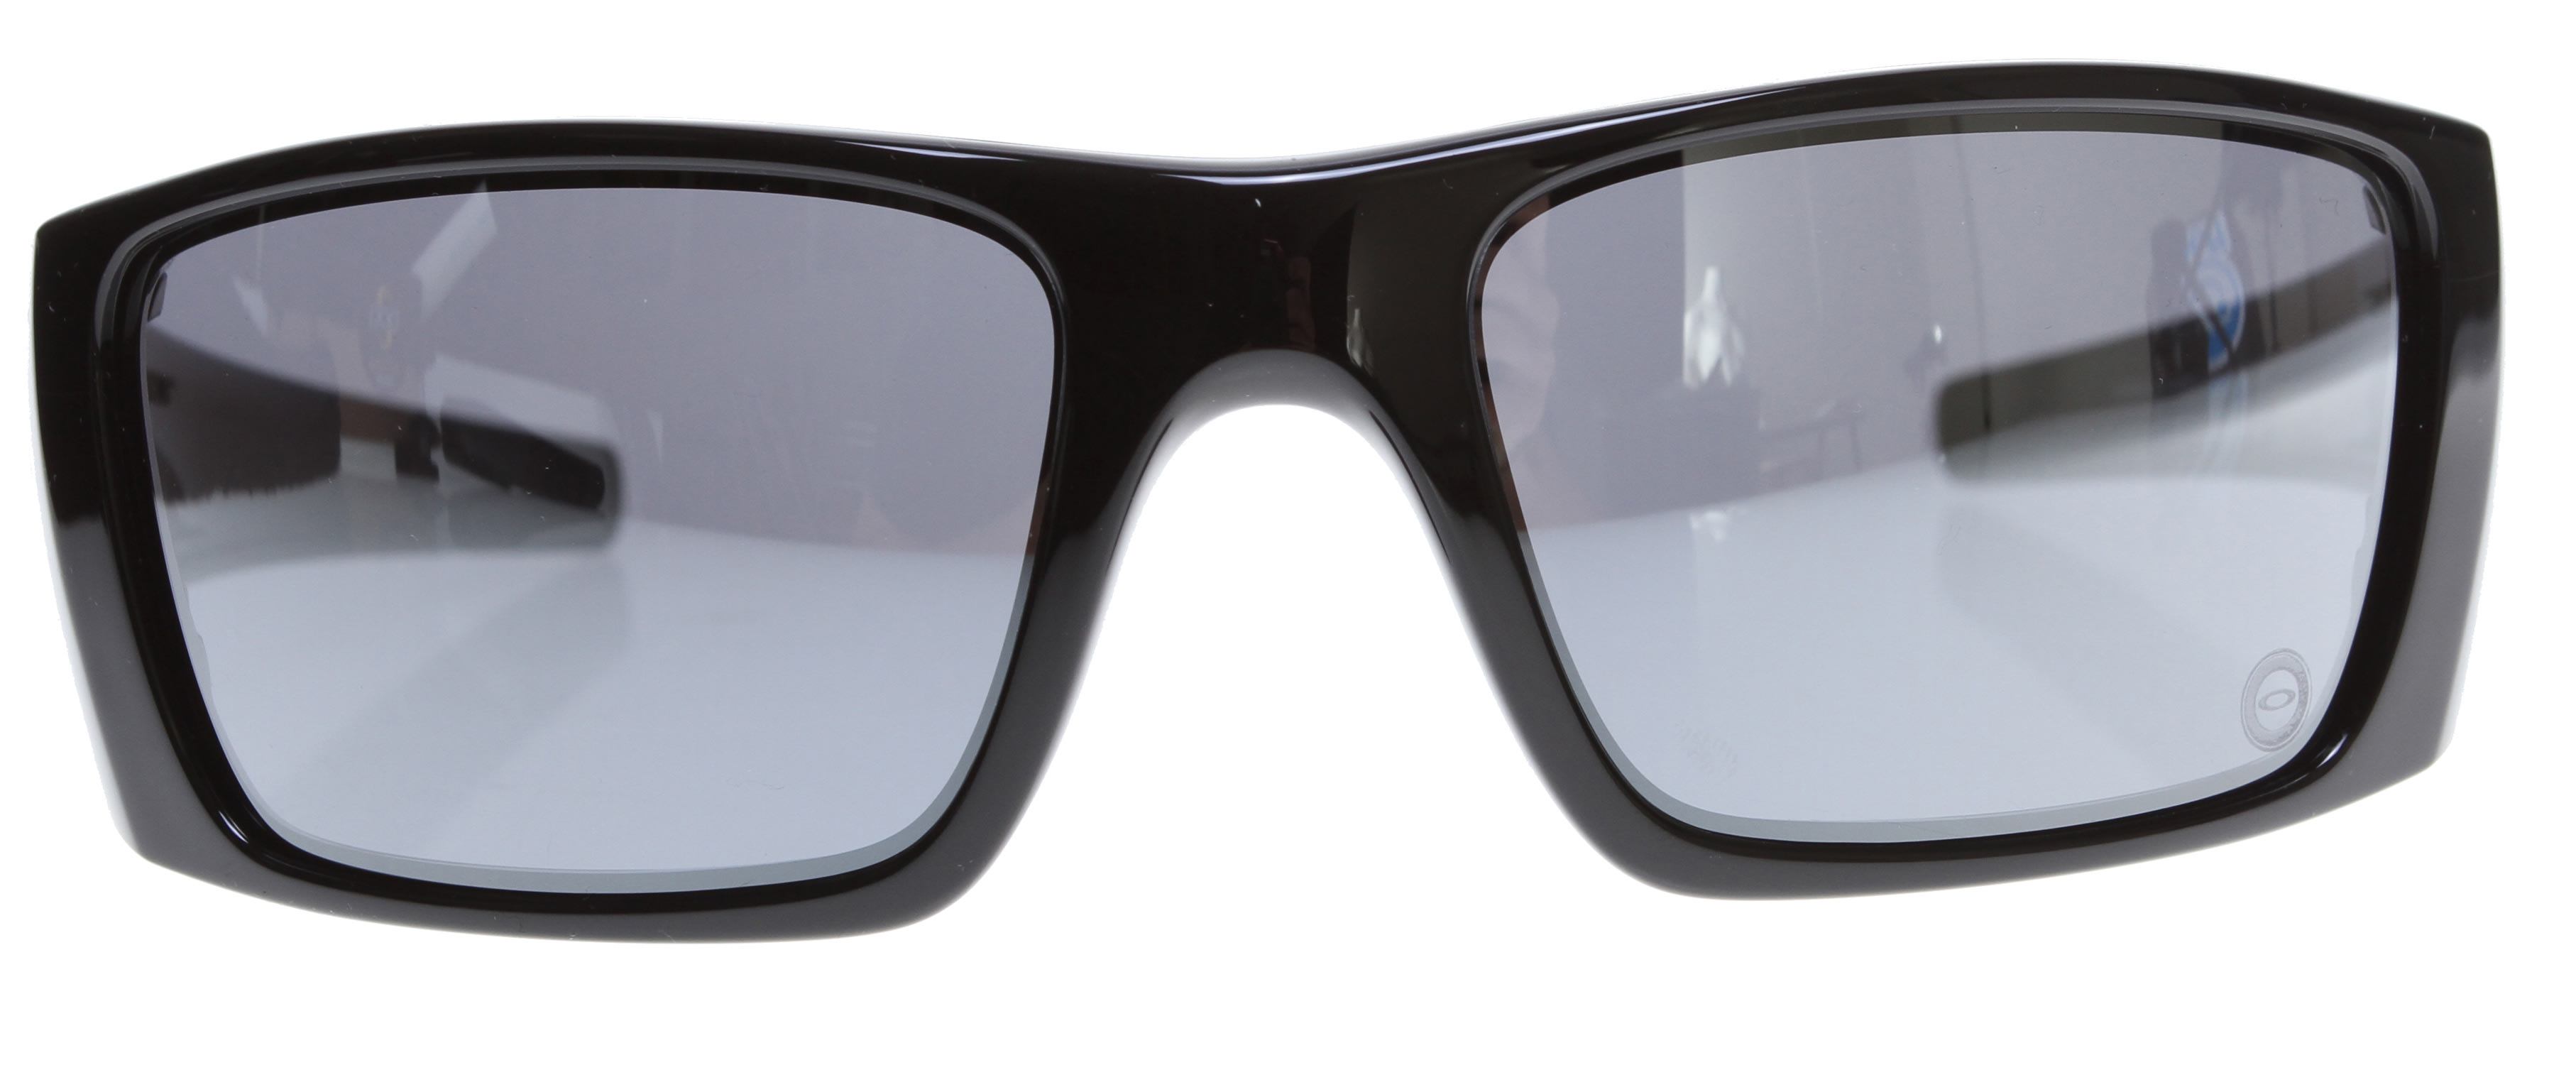 cec138eb854 Oakley London Fuel Cell Sunglasses - thumbnail 3